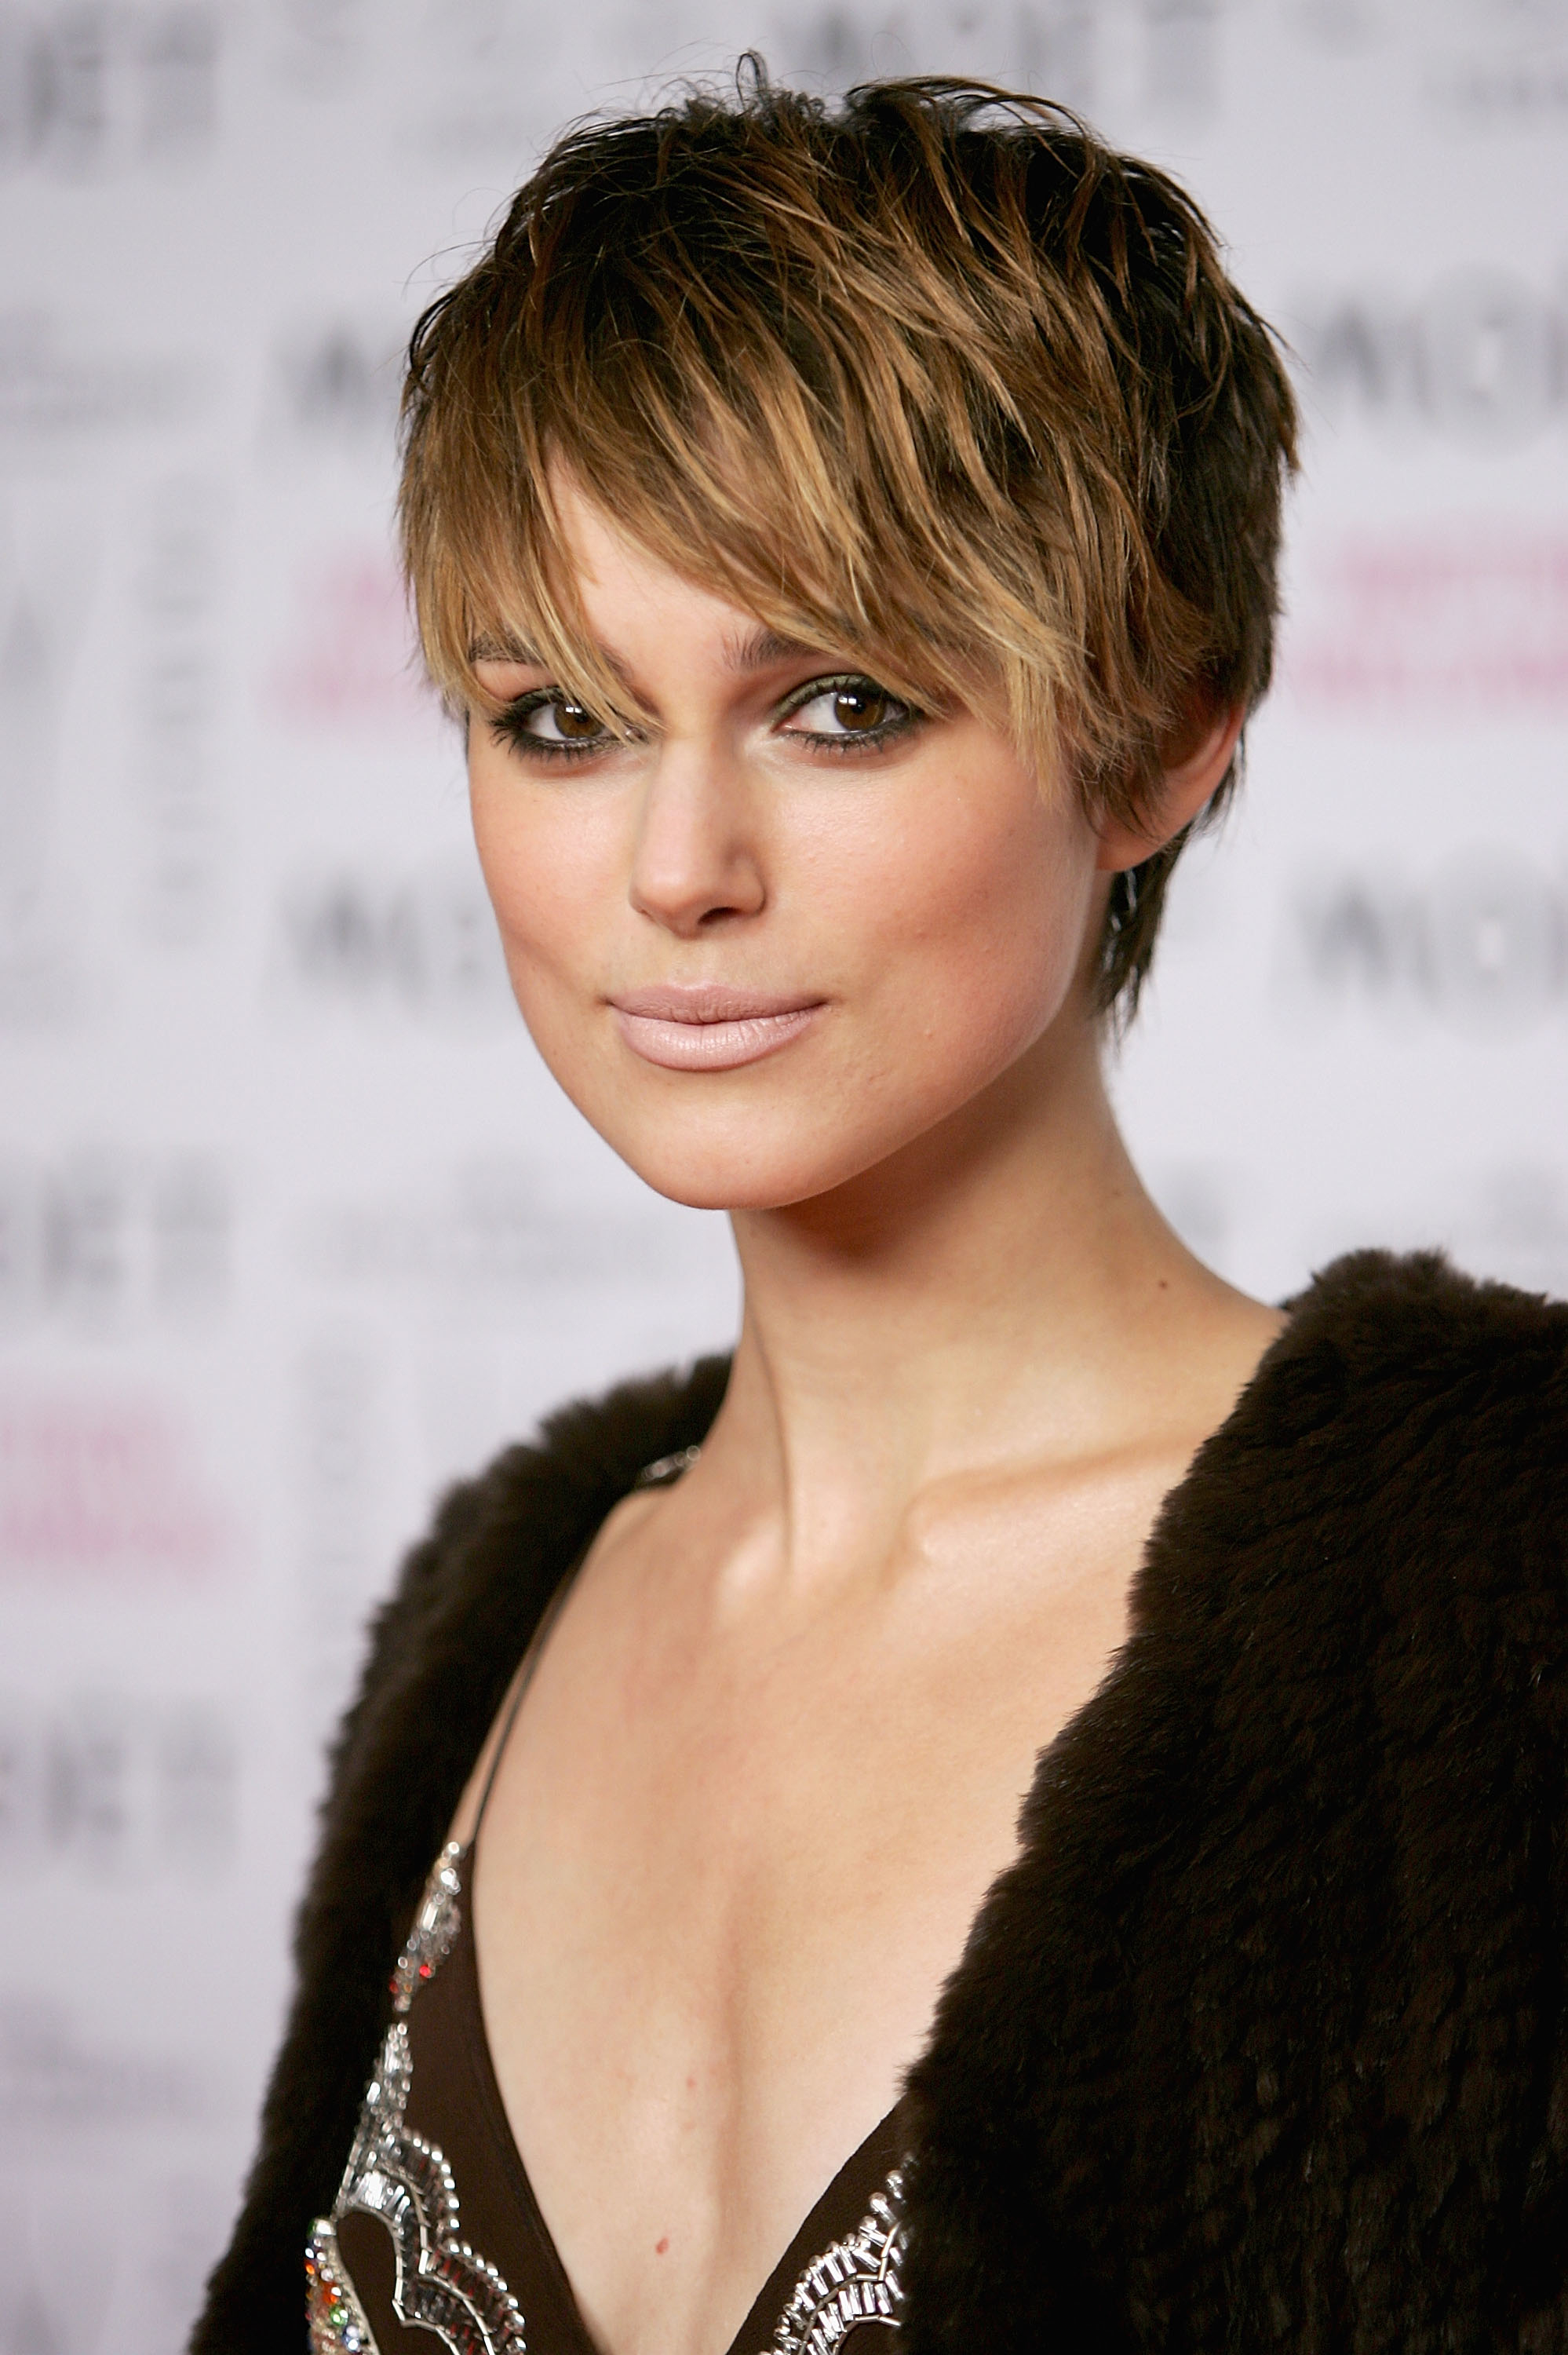 short haircuts for thick hair - Best Short Hairstyles